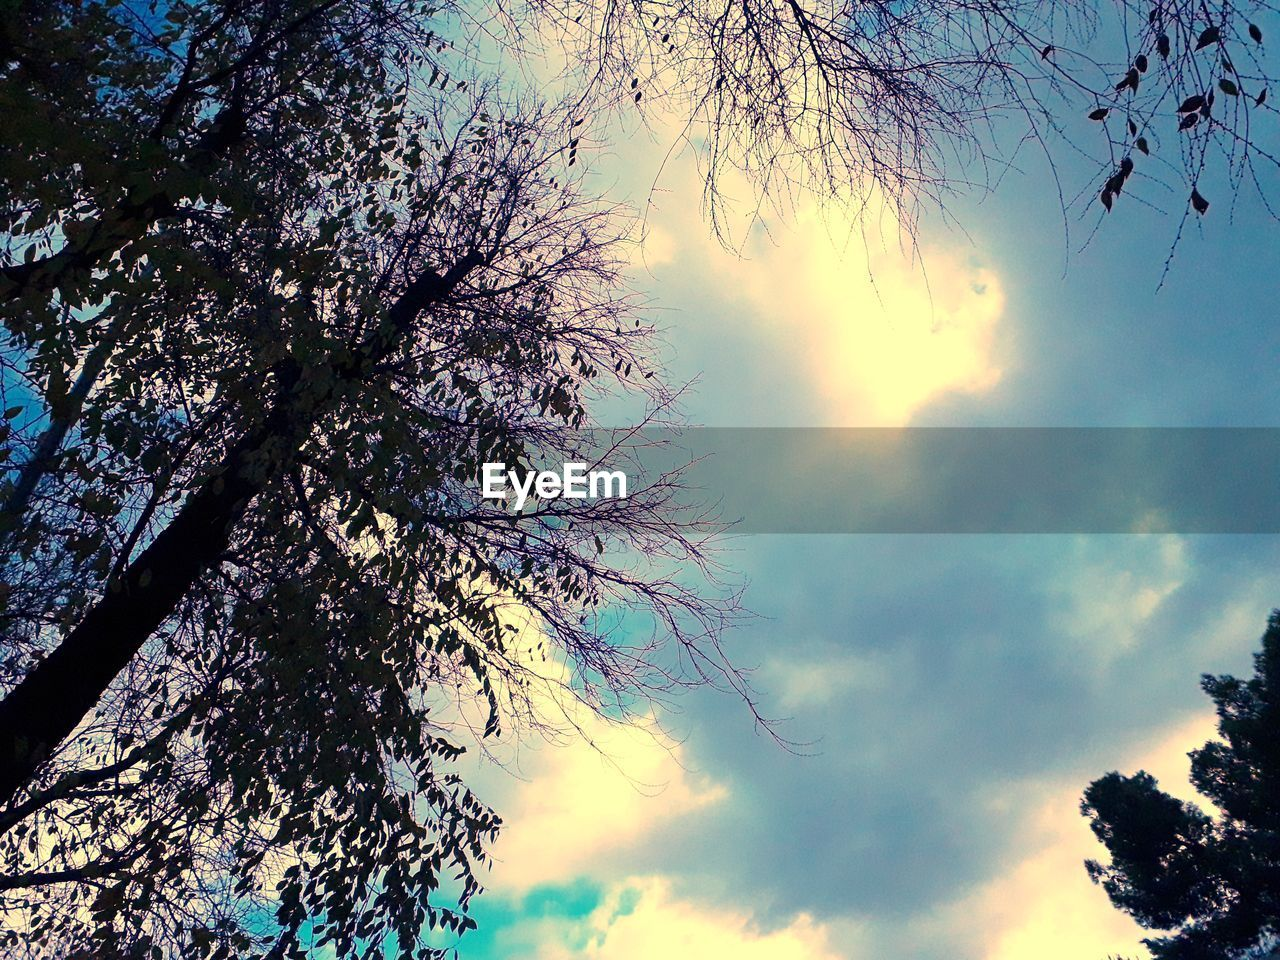 tree, sky, plant, beauty in nature, low angle view, cloud - sky, nature, tranquility, branch, growth, sunset, silhouette, no people, tranquil scene, scenics - nature, outdoors, day, sunlight, tree trunk, trunk, treetop, tree canopy, directly below